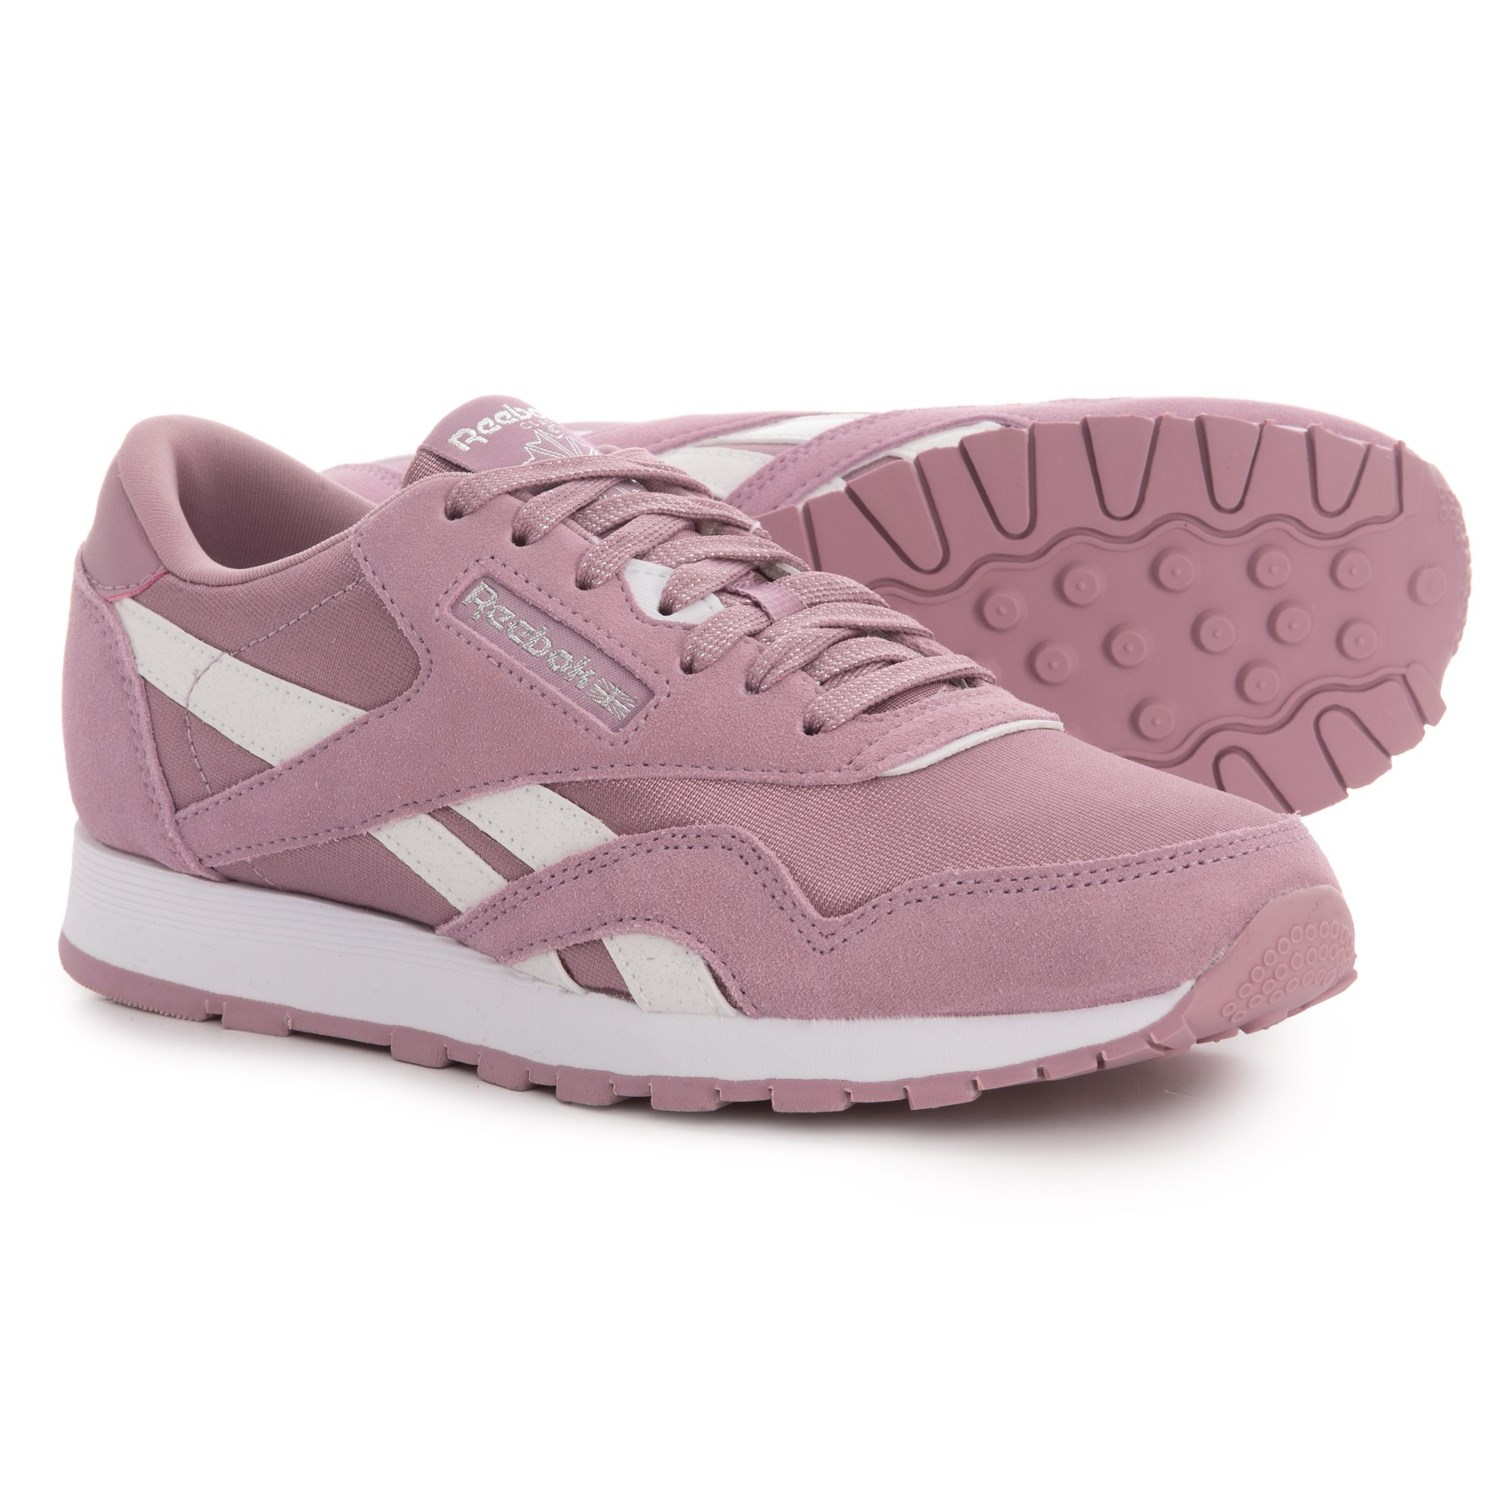 Reebok Classic Suede-Nylon Sneakers (For Big Girls) in Infused Lilac White 96aa8c809